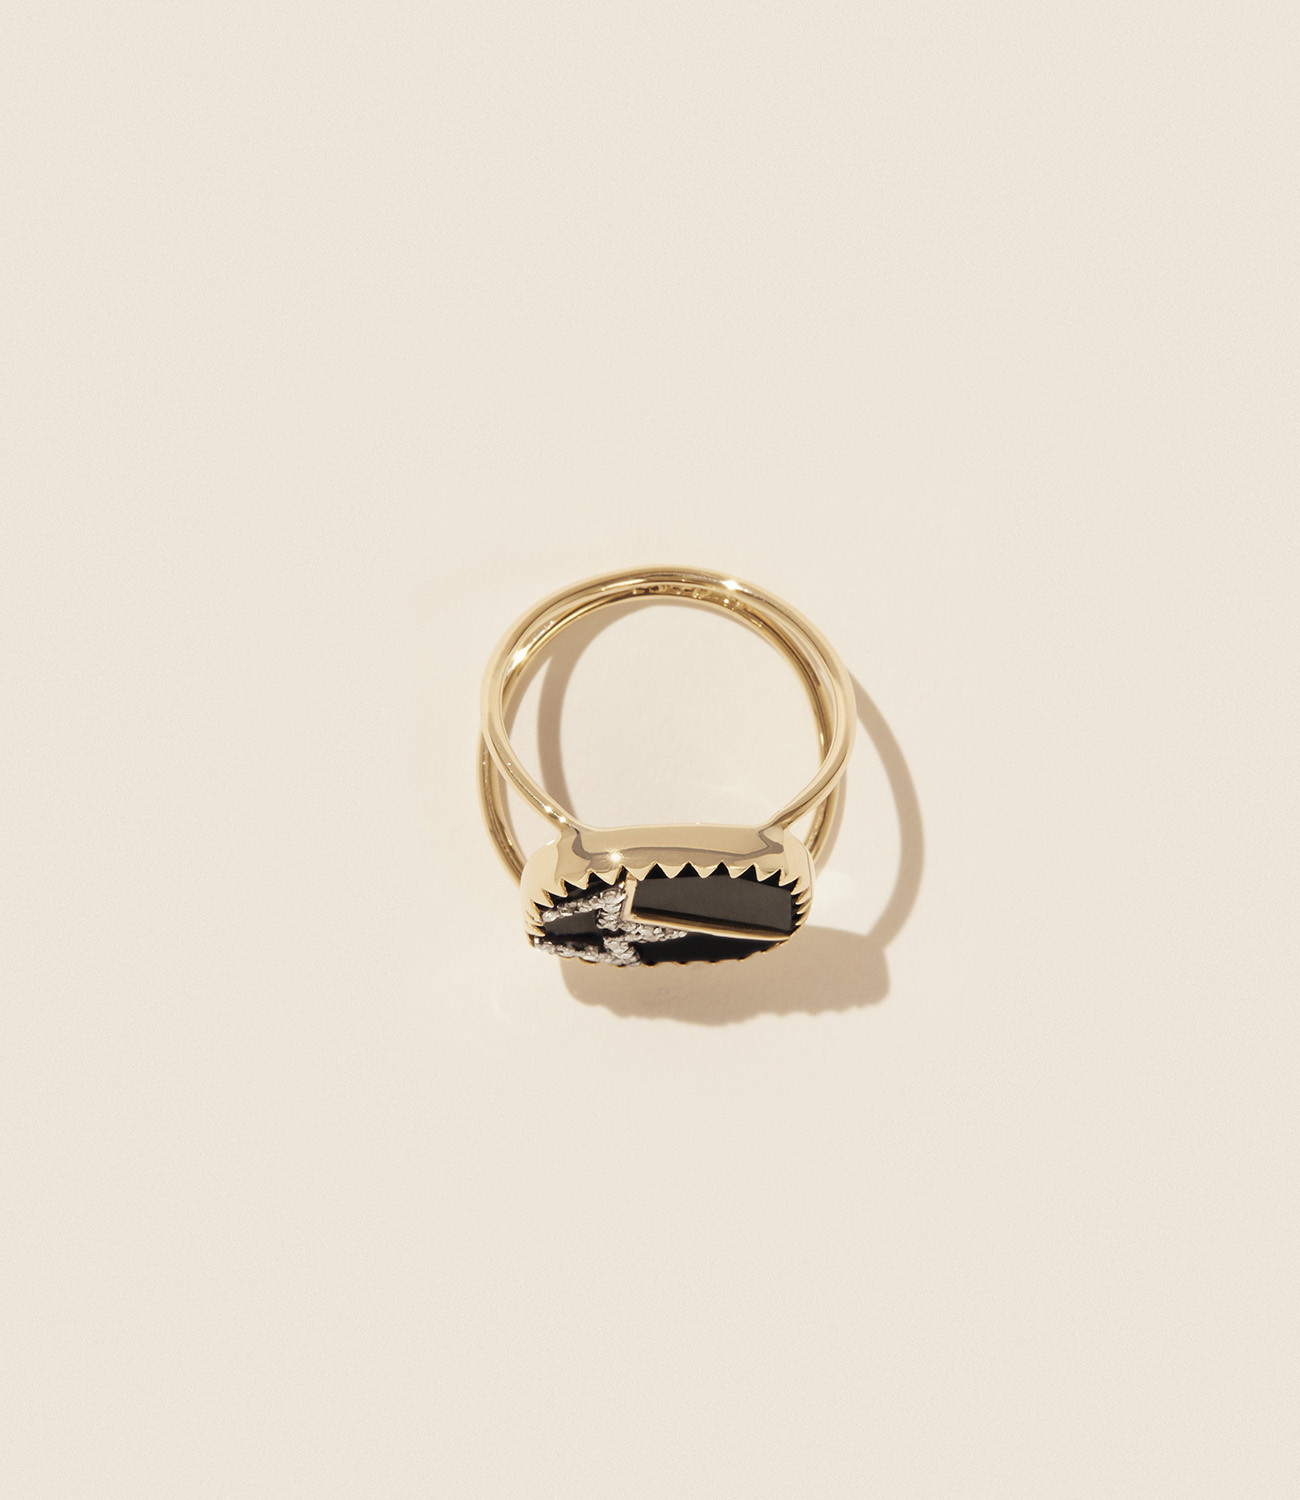 Pascale Monvoisin Ring VARDA N°2 BLACK DIAMOND